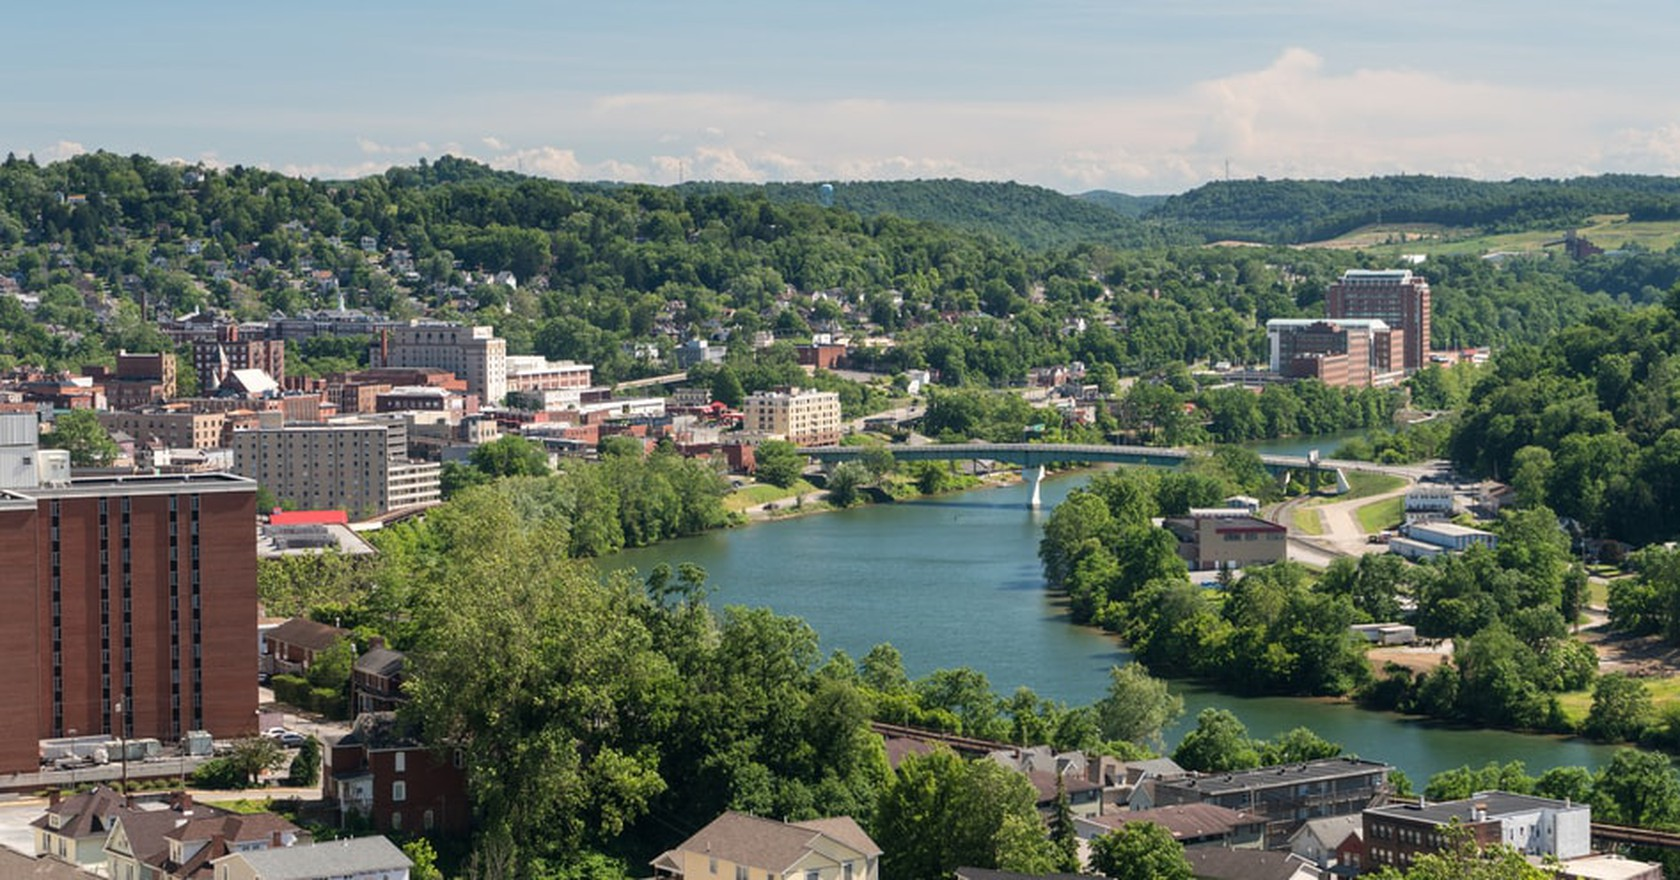 View Of The Downtown Area Morgantown Wv And Campus West Virginia University